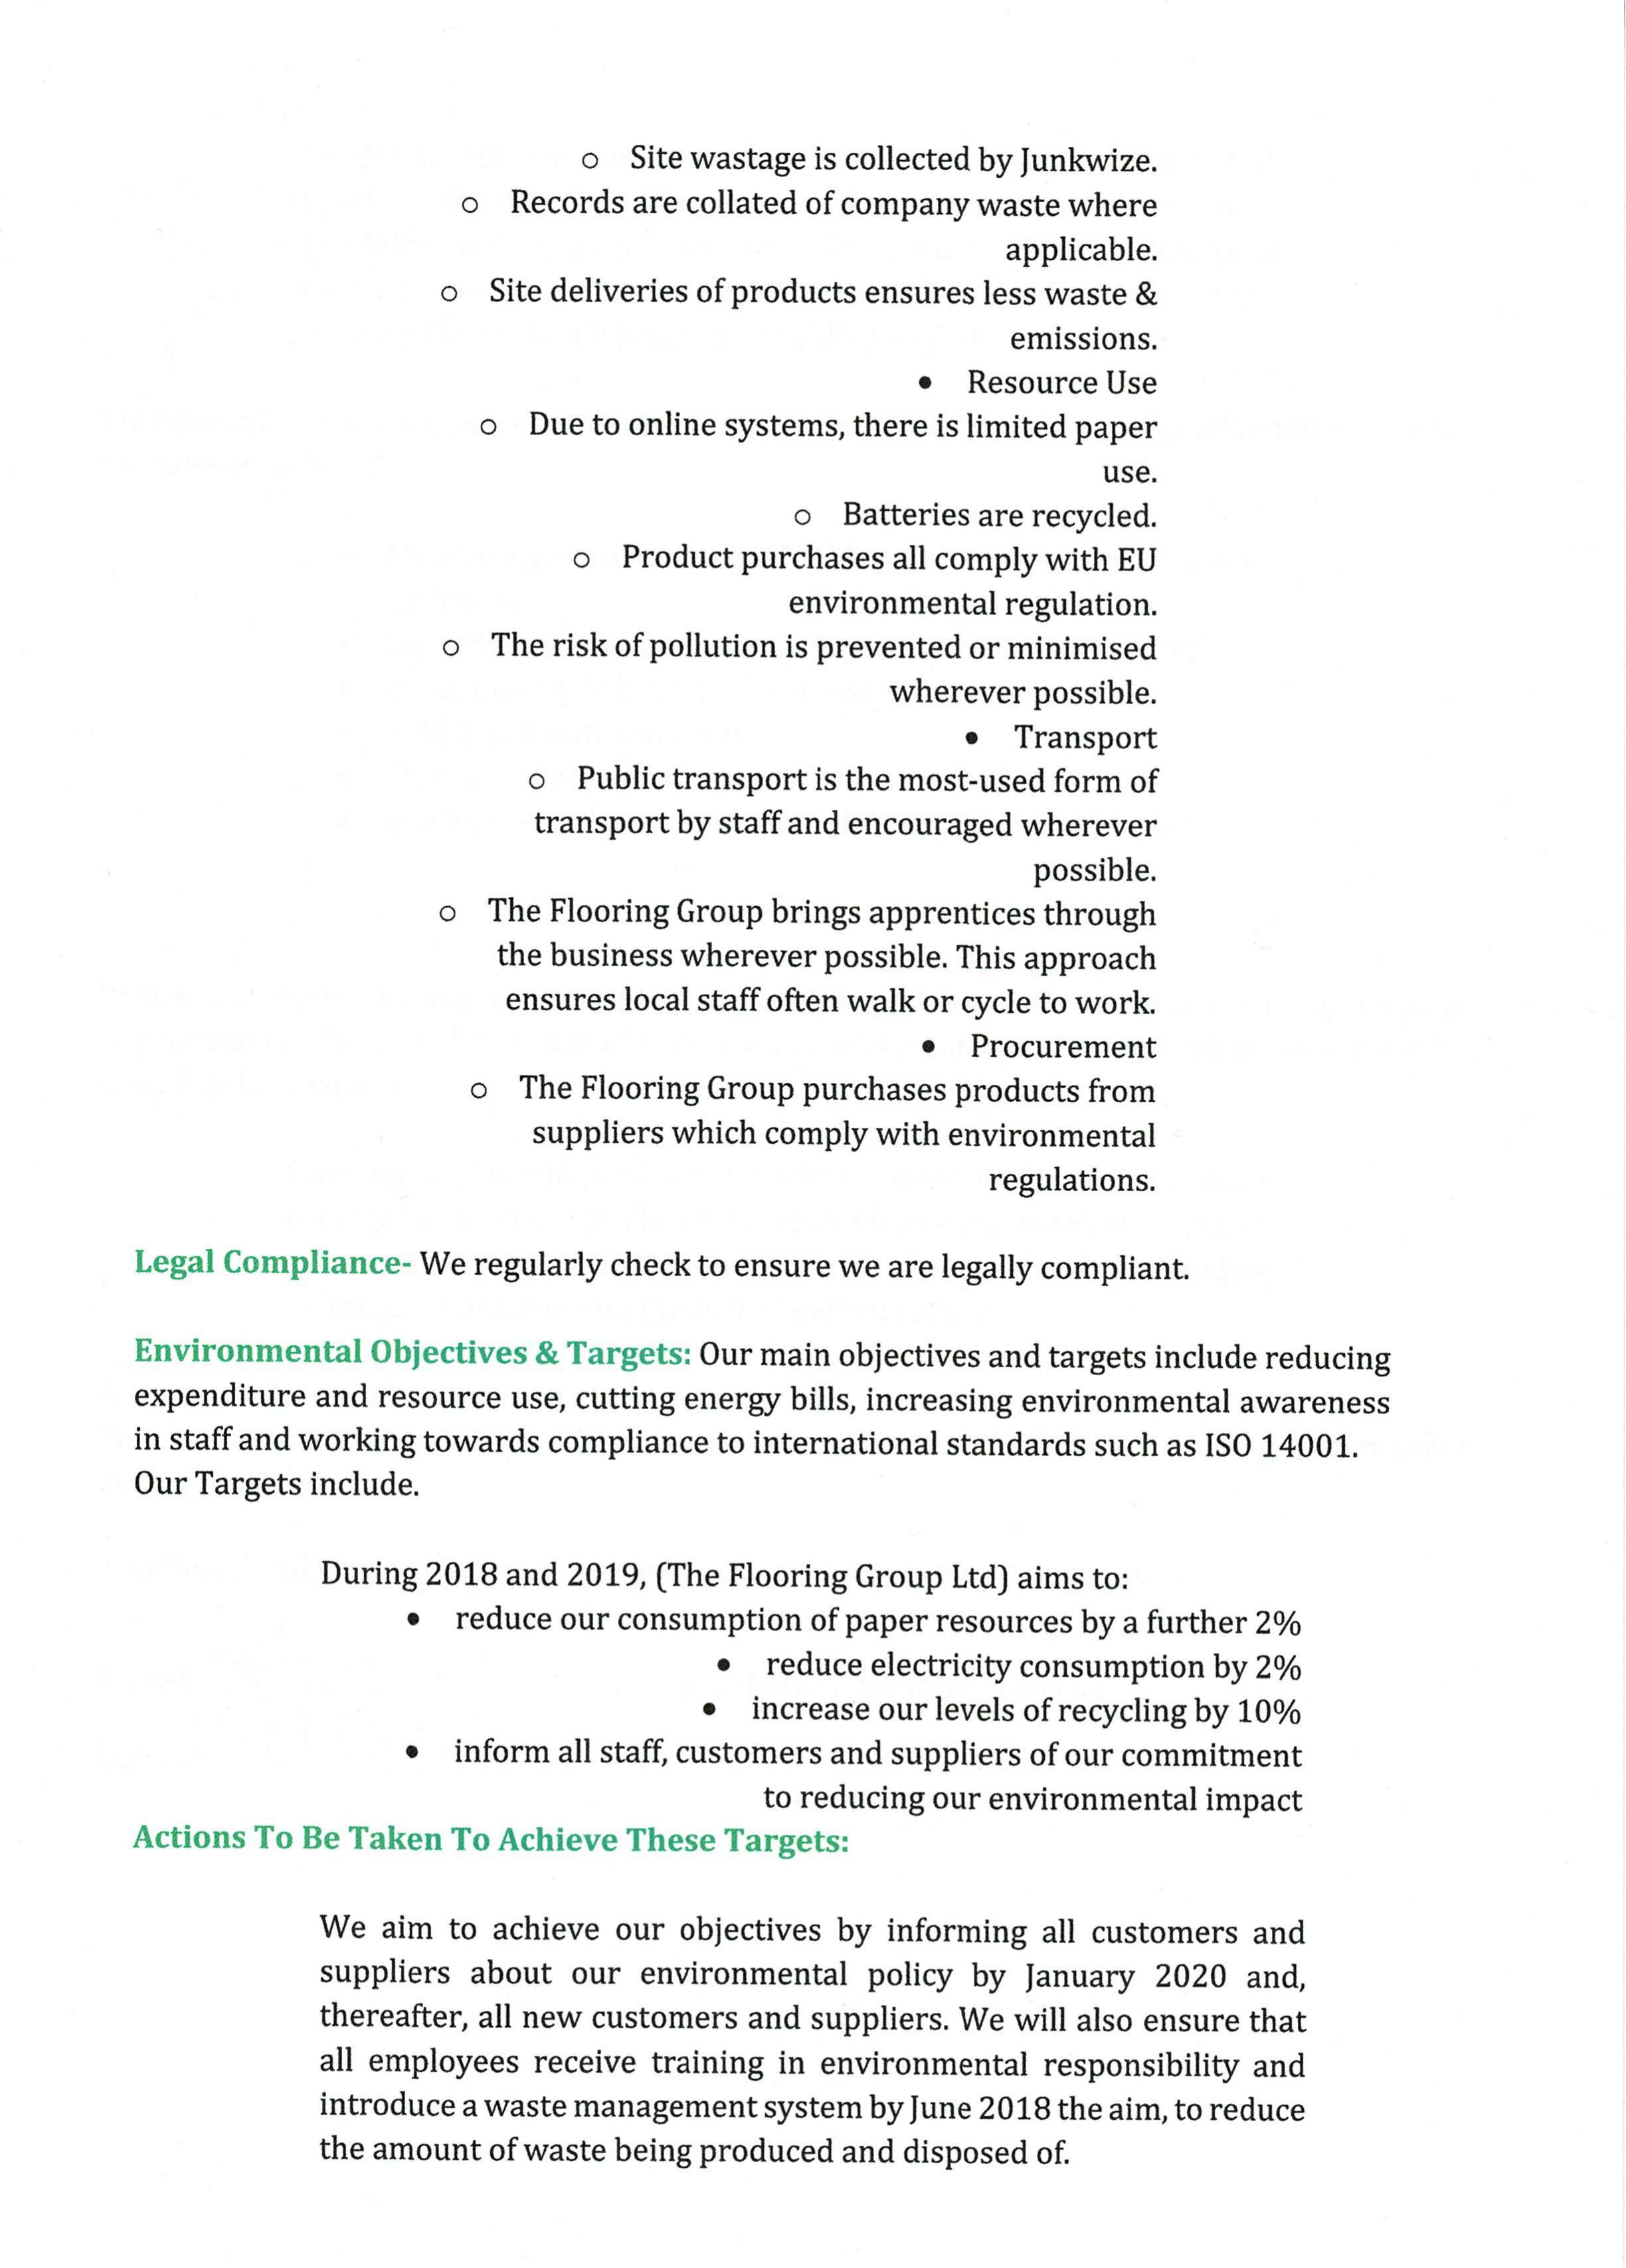 environmental policy page 02